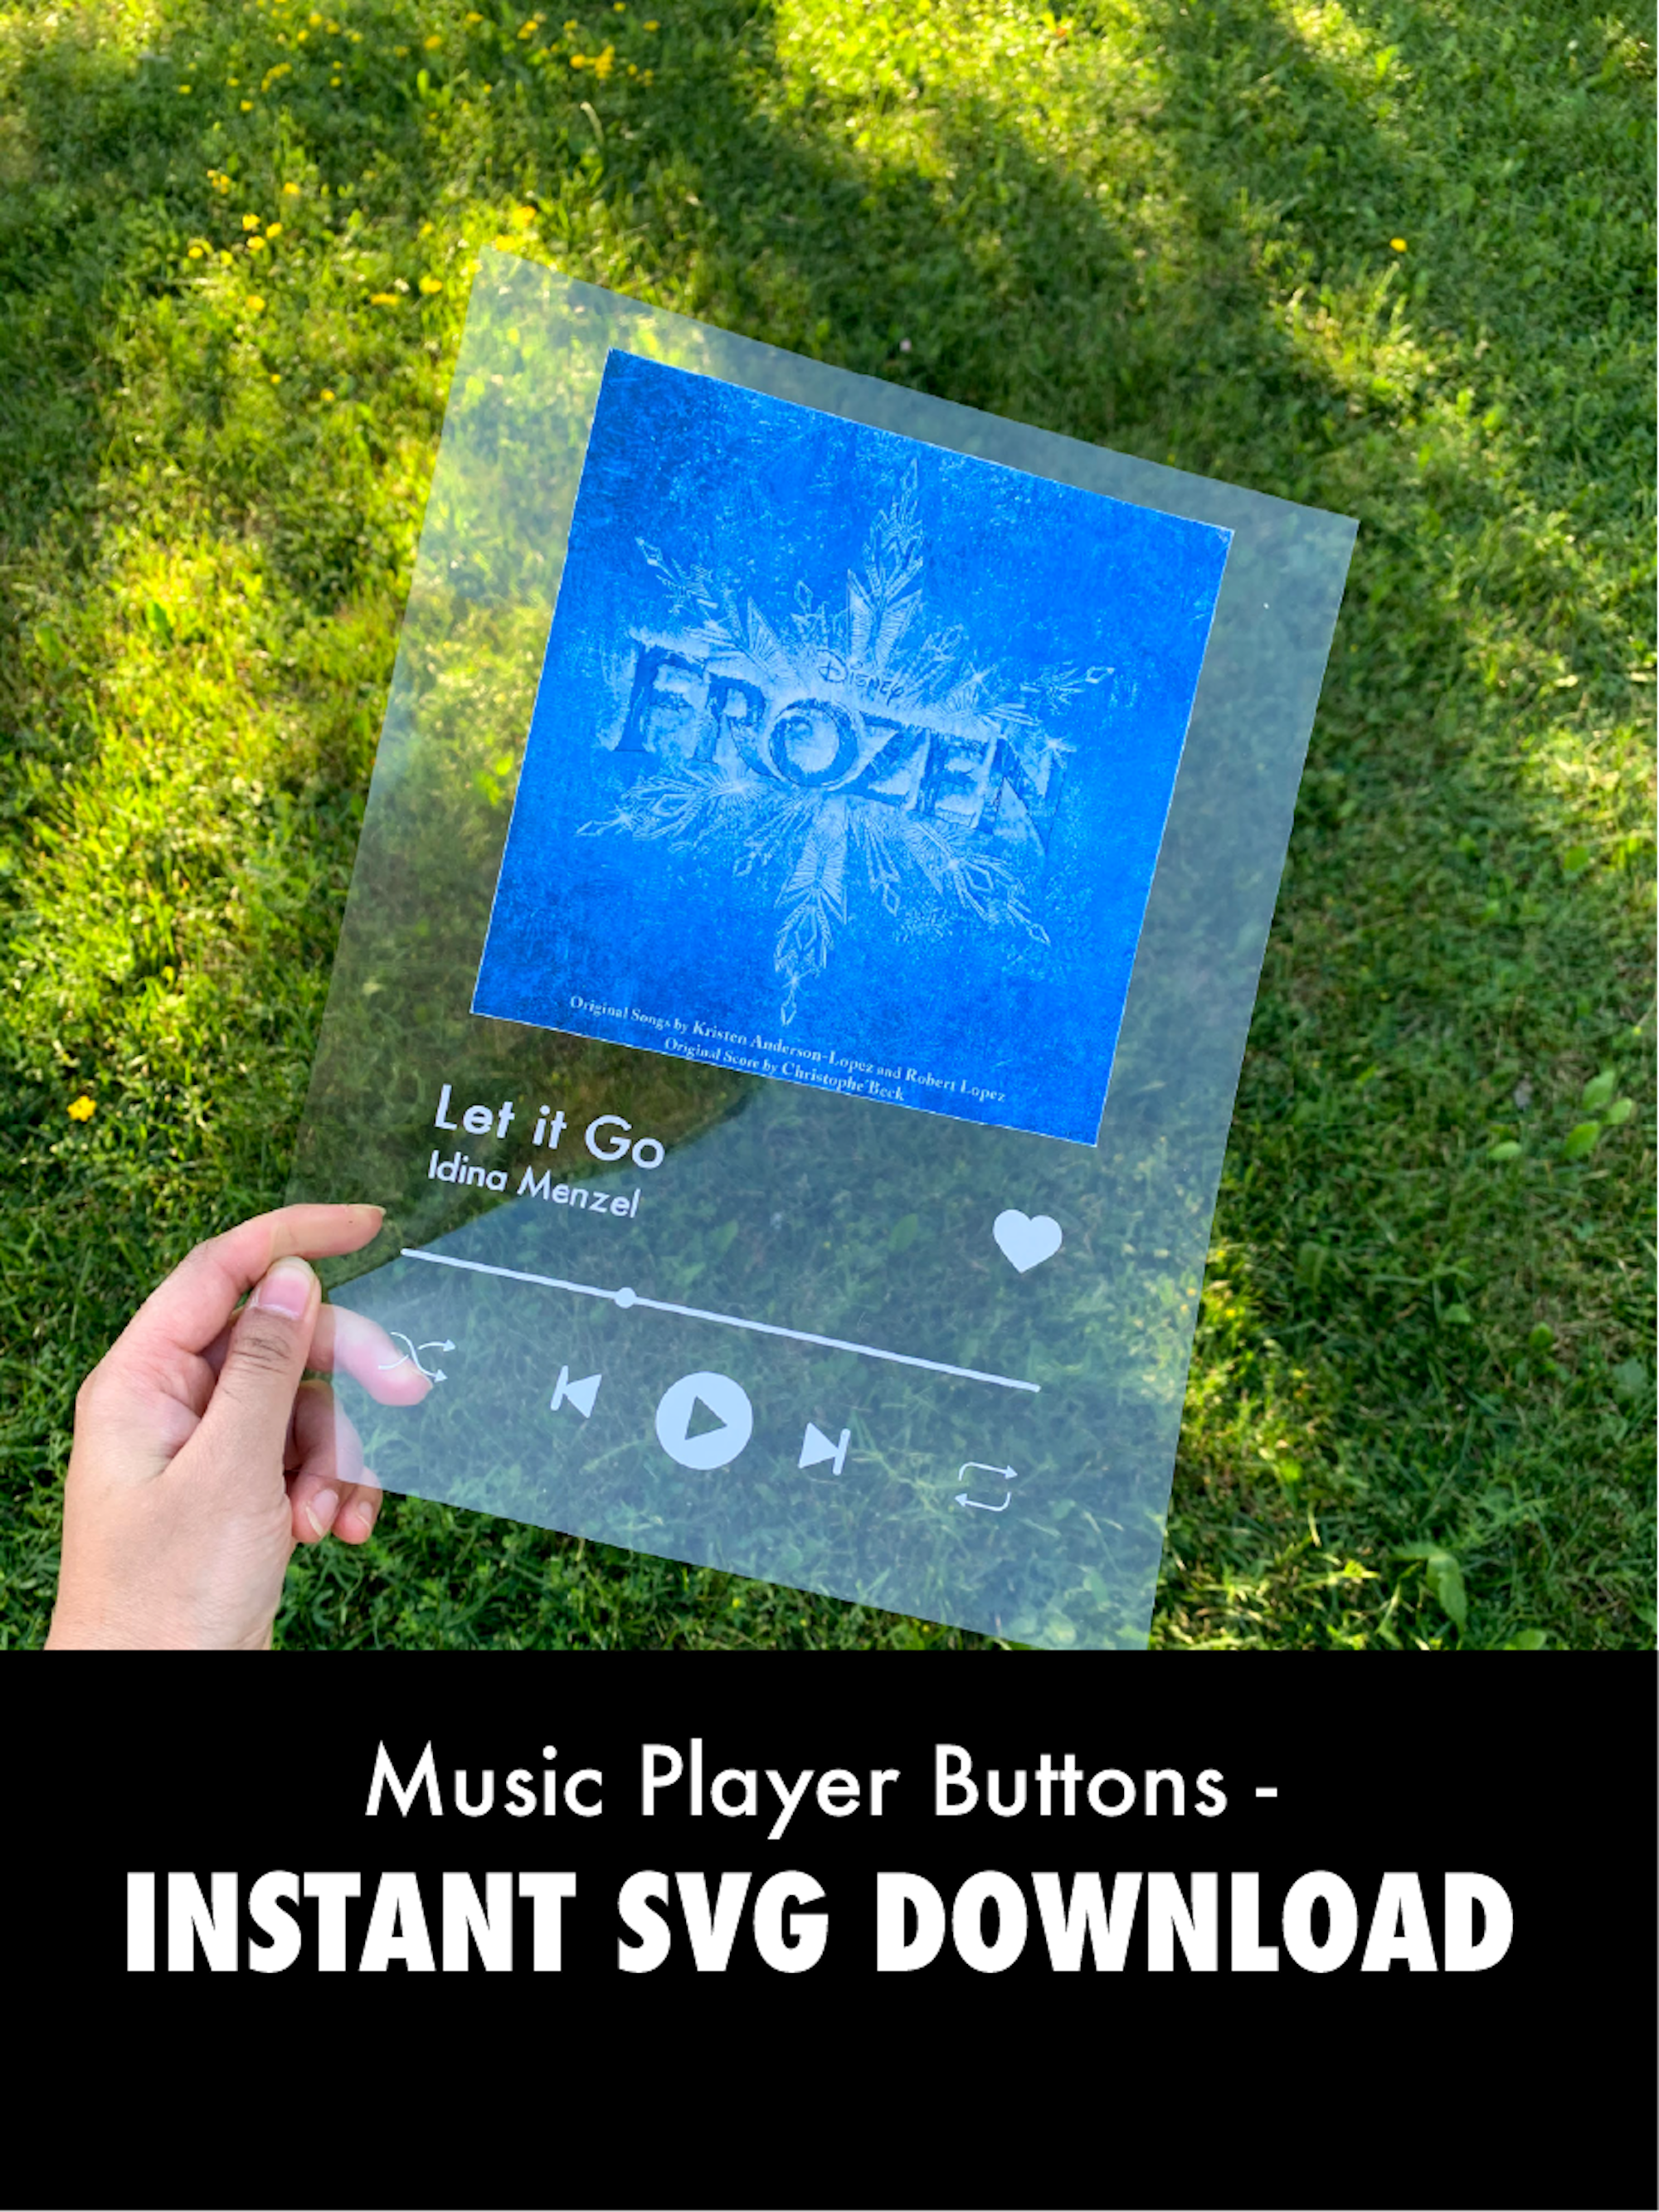 Music Covers Svg Instant Download Tiktok Trend For Spotify Apple Music Album Instant Download For Audio And Play Buttons For Cricut In 2021 Music Covers Instant Download Music